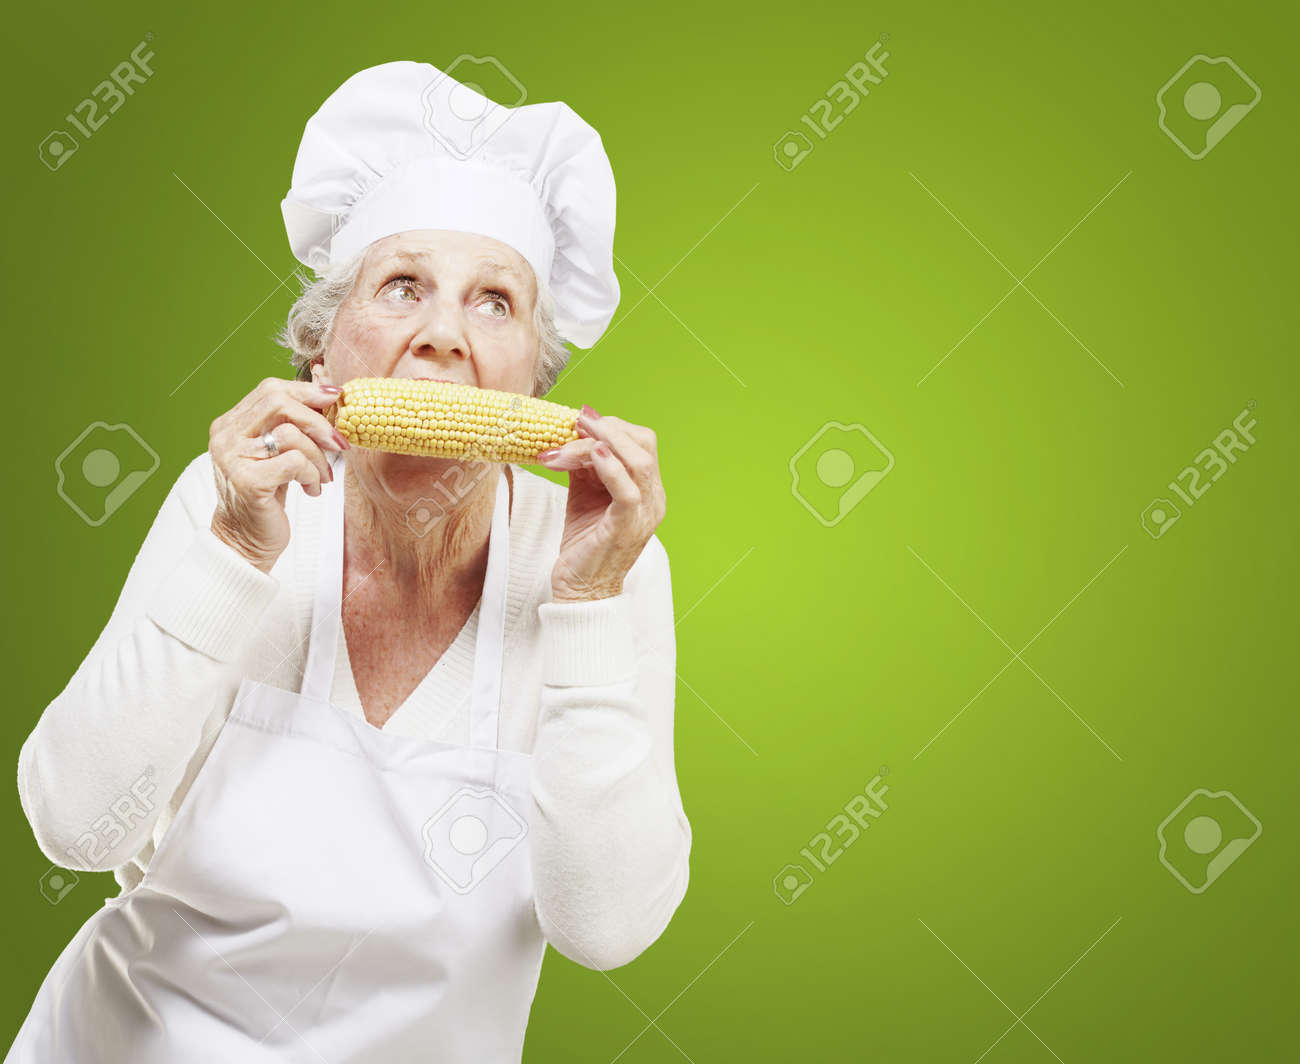 senior woman cook eating a corncob against a green background Stock Photo - 12656438